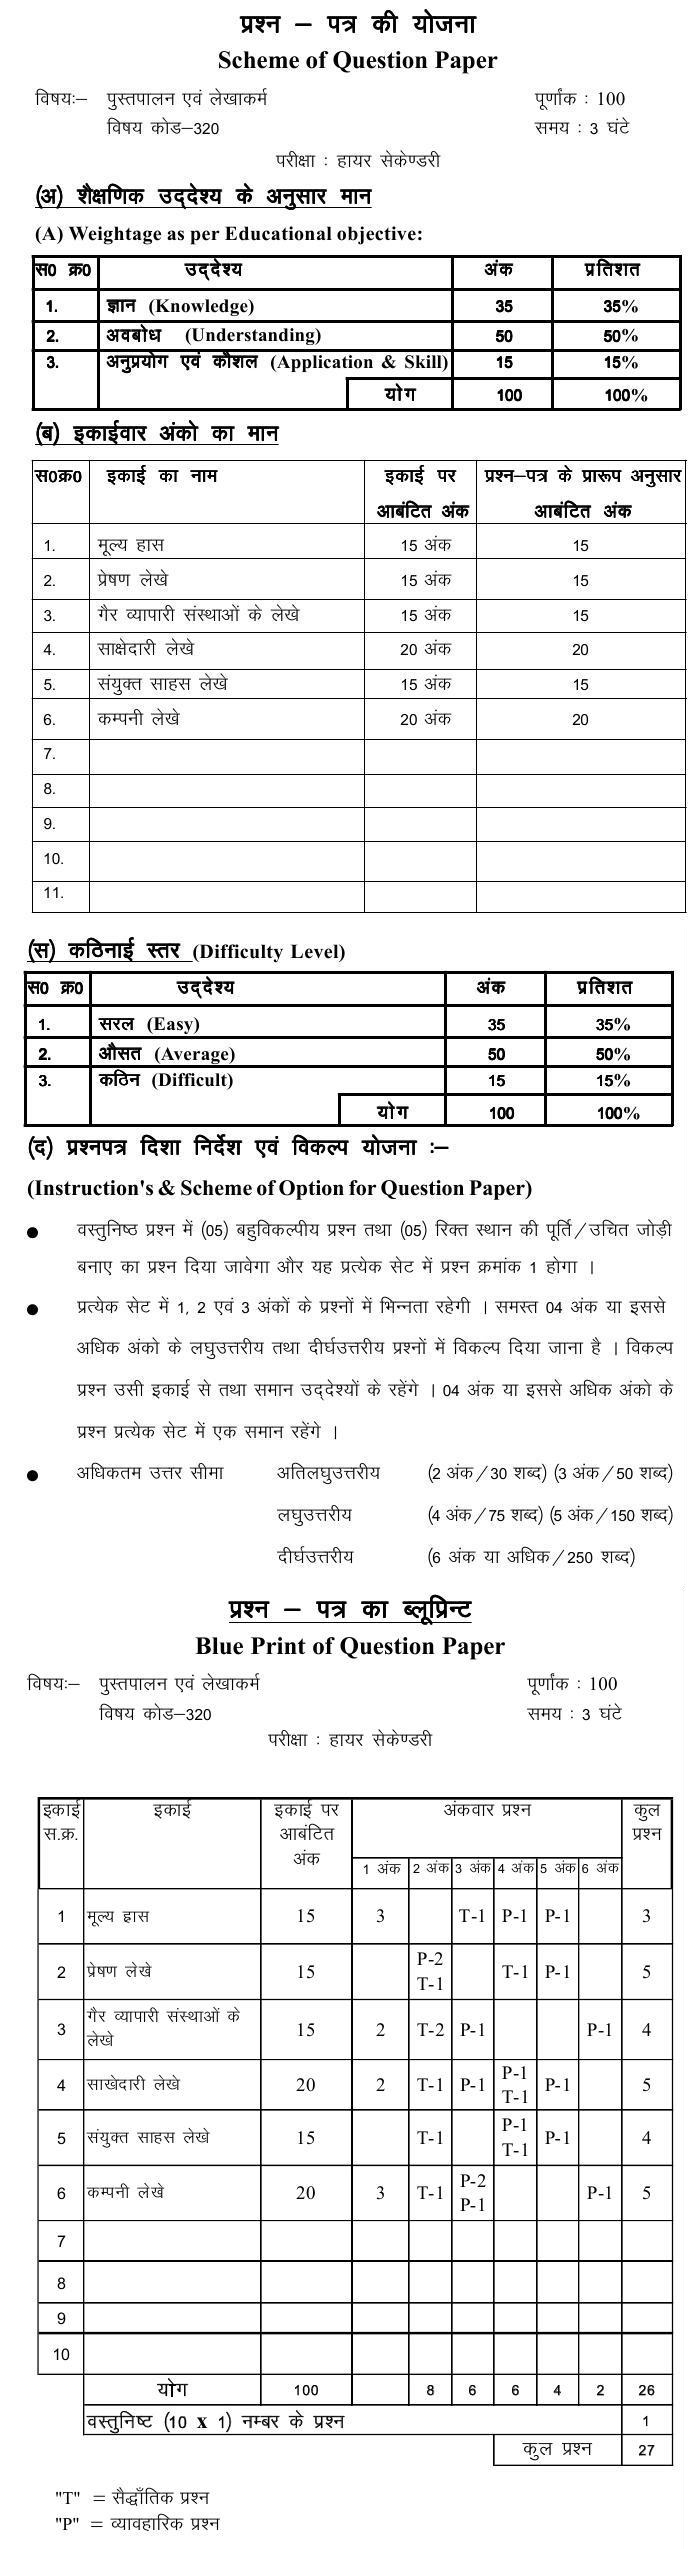 Chattisgarh Board Class 12 Scheme and Blue Print of Pustapalan evam lekhakarma